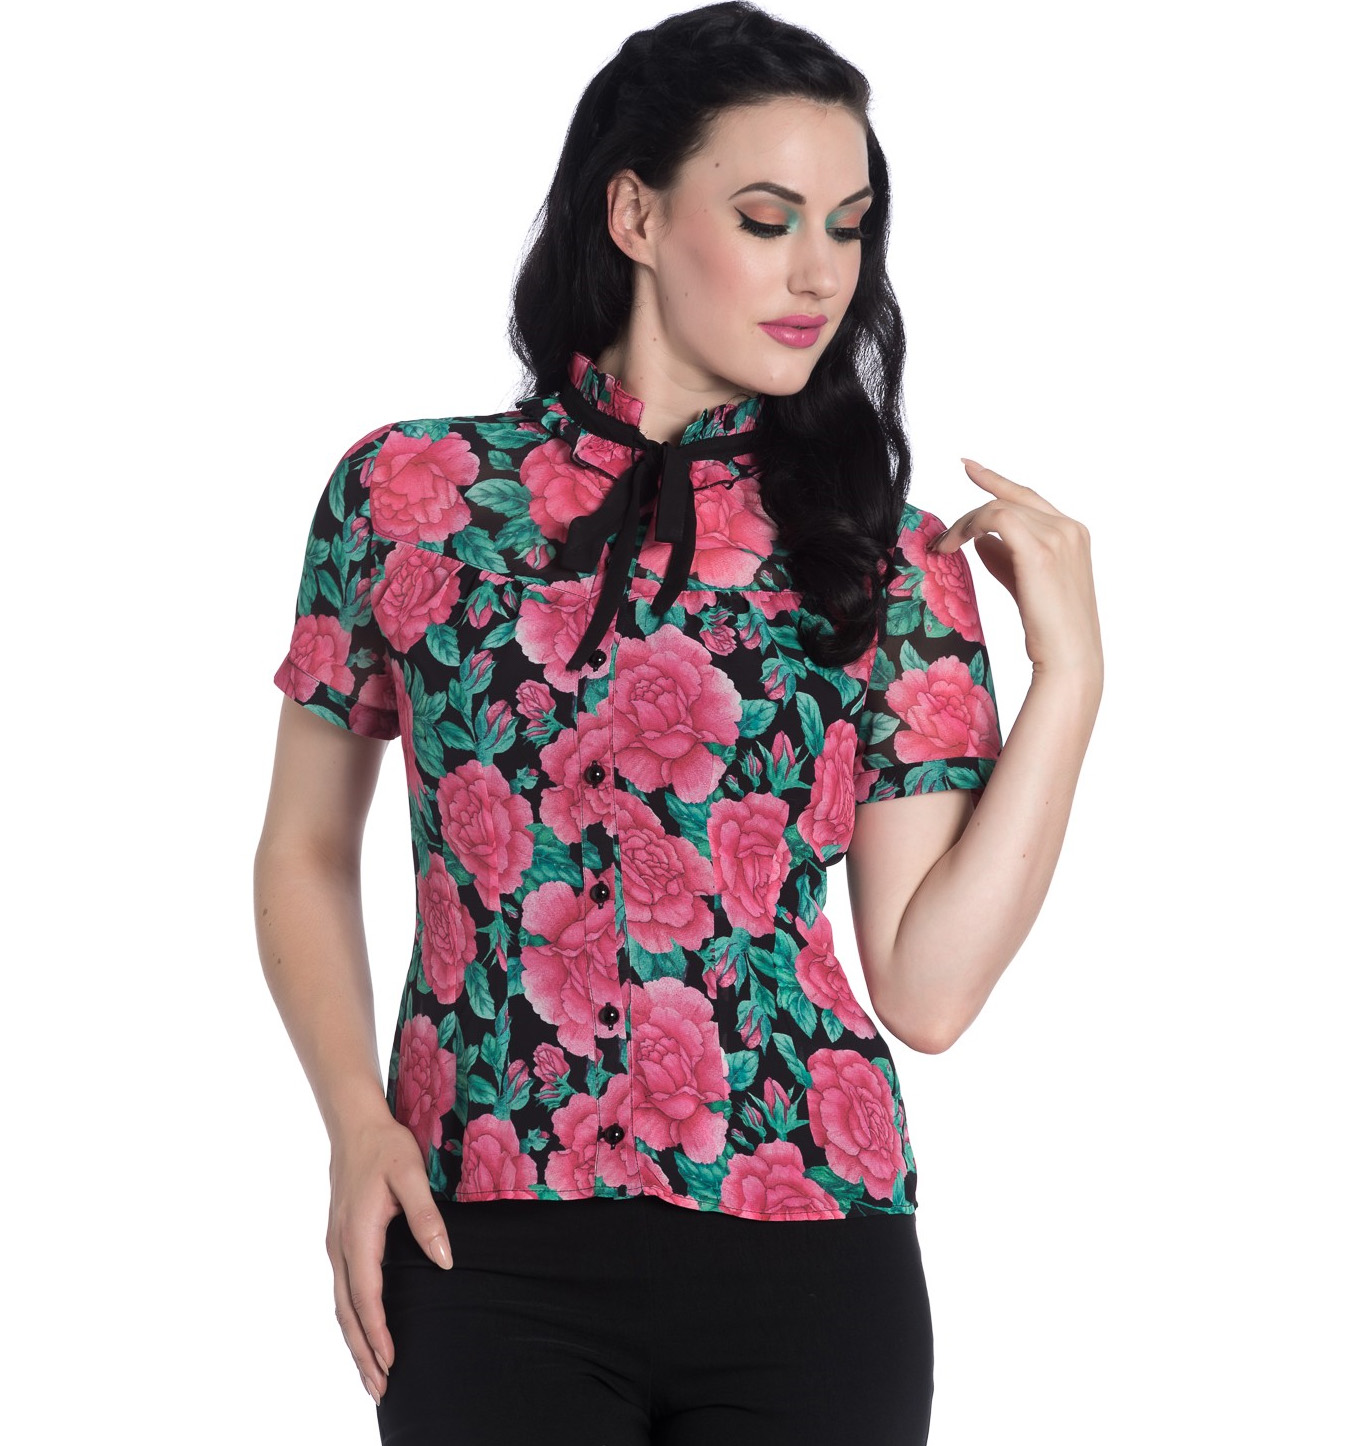 Hell-Bunny-Shirt-Top-Flowers-Roses-EDEN-ROSE-Black-Pink-Blouse-All-Sizes thumbnail 7